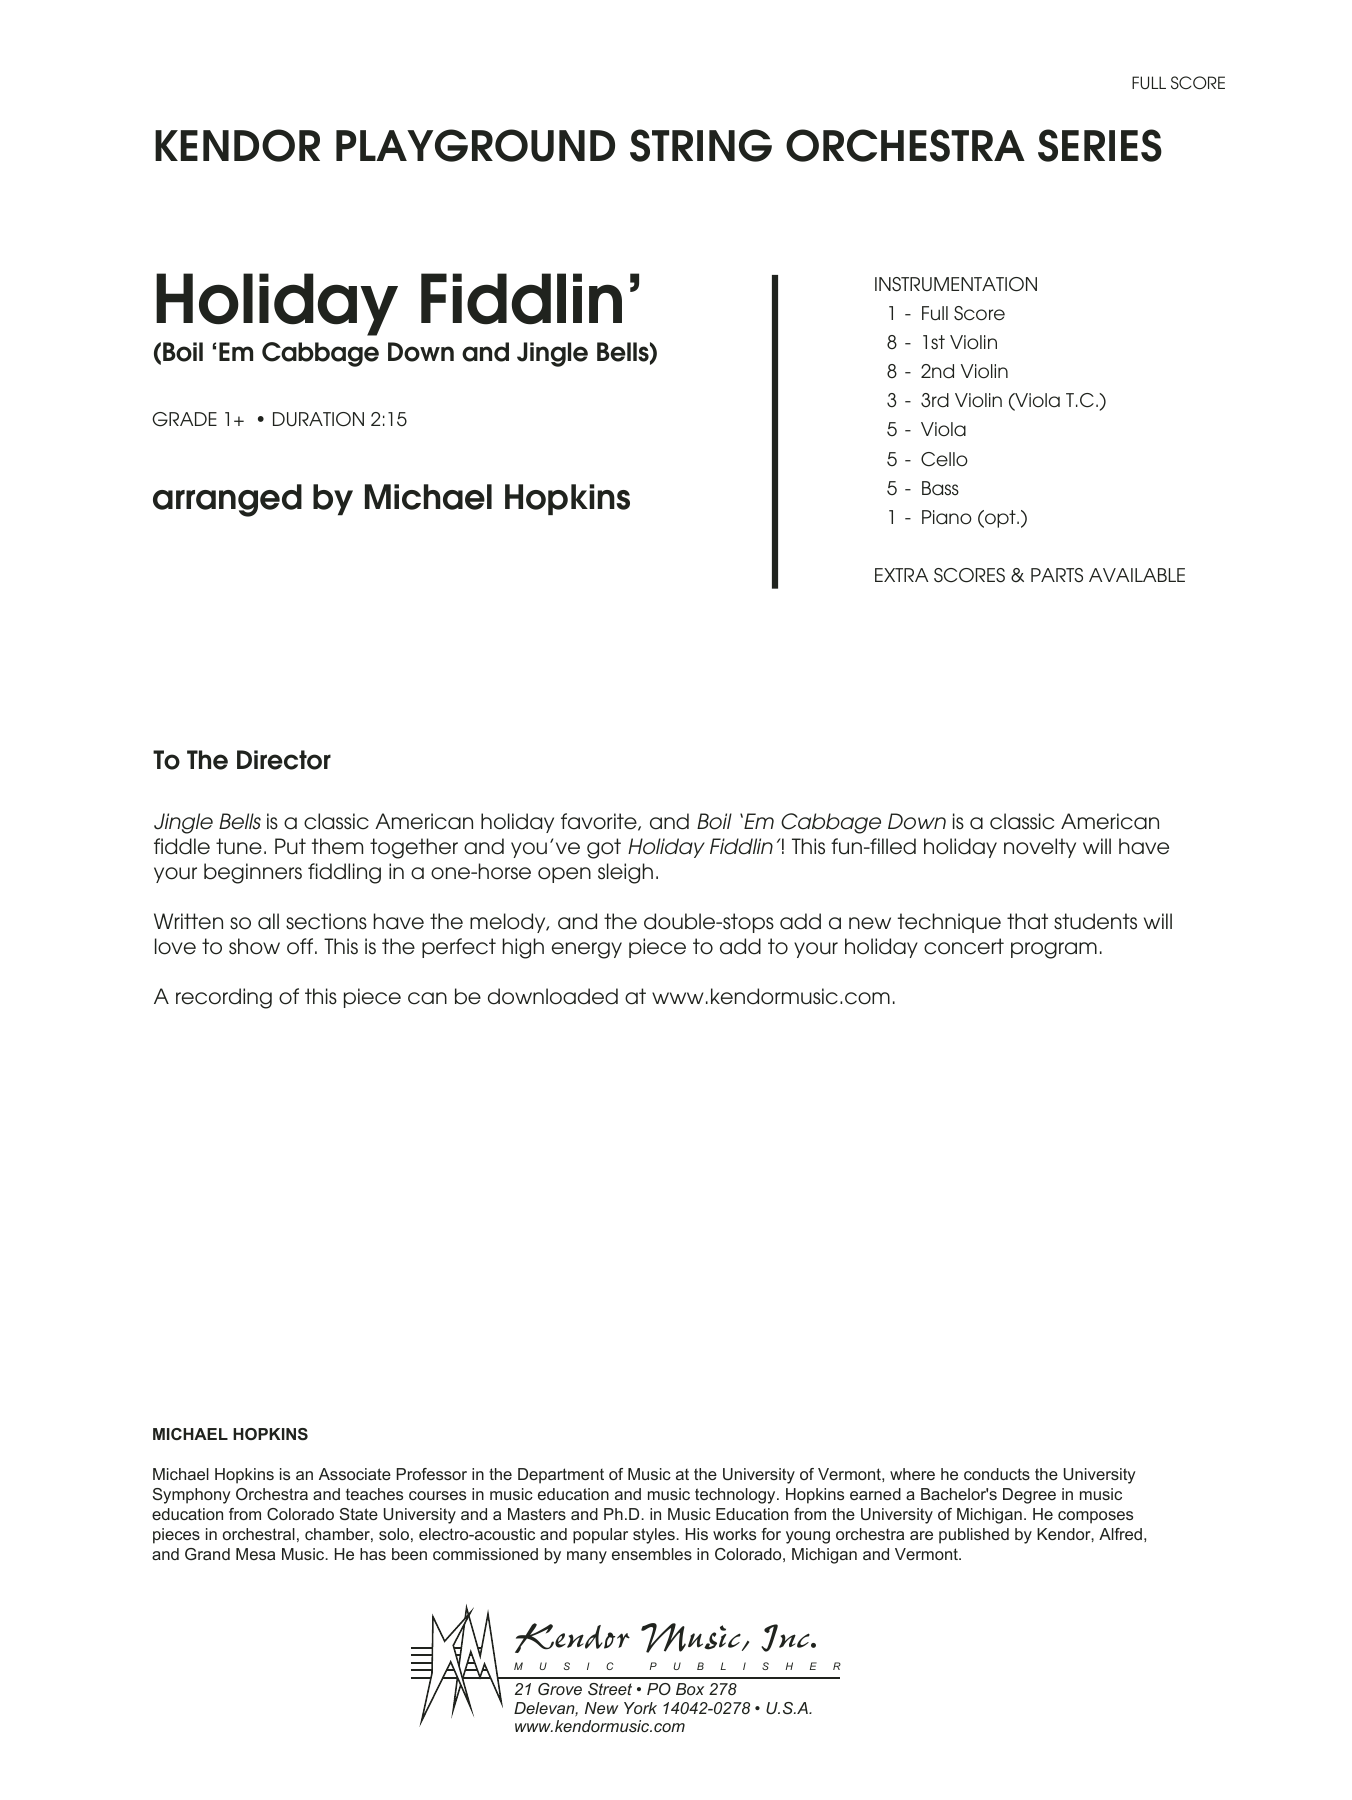 Holiday Fiddlin' (Boil 'Em Cabbage Down and Jingle Bells) - Full Score Sheet Music